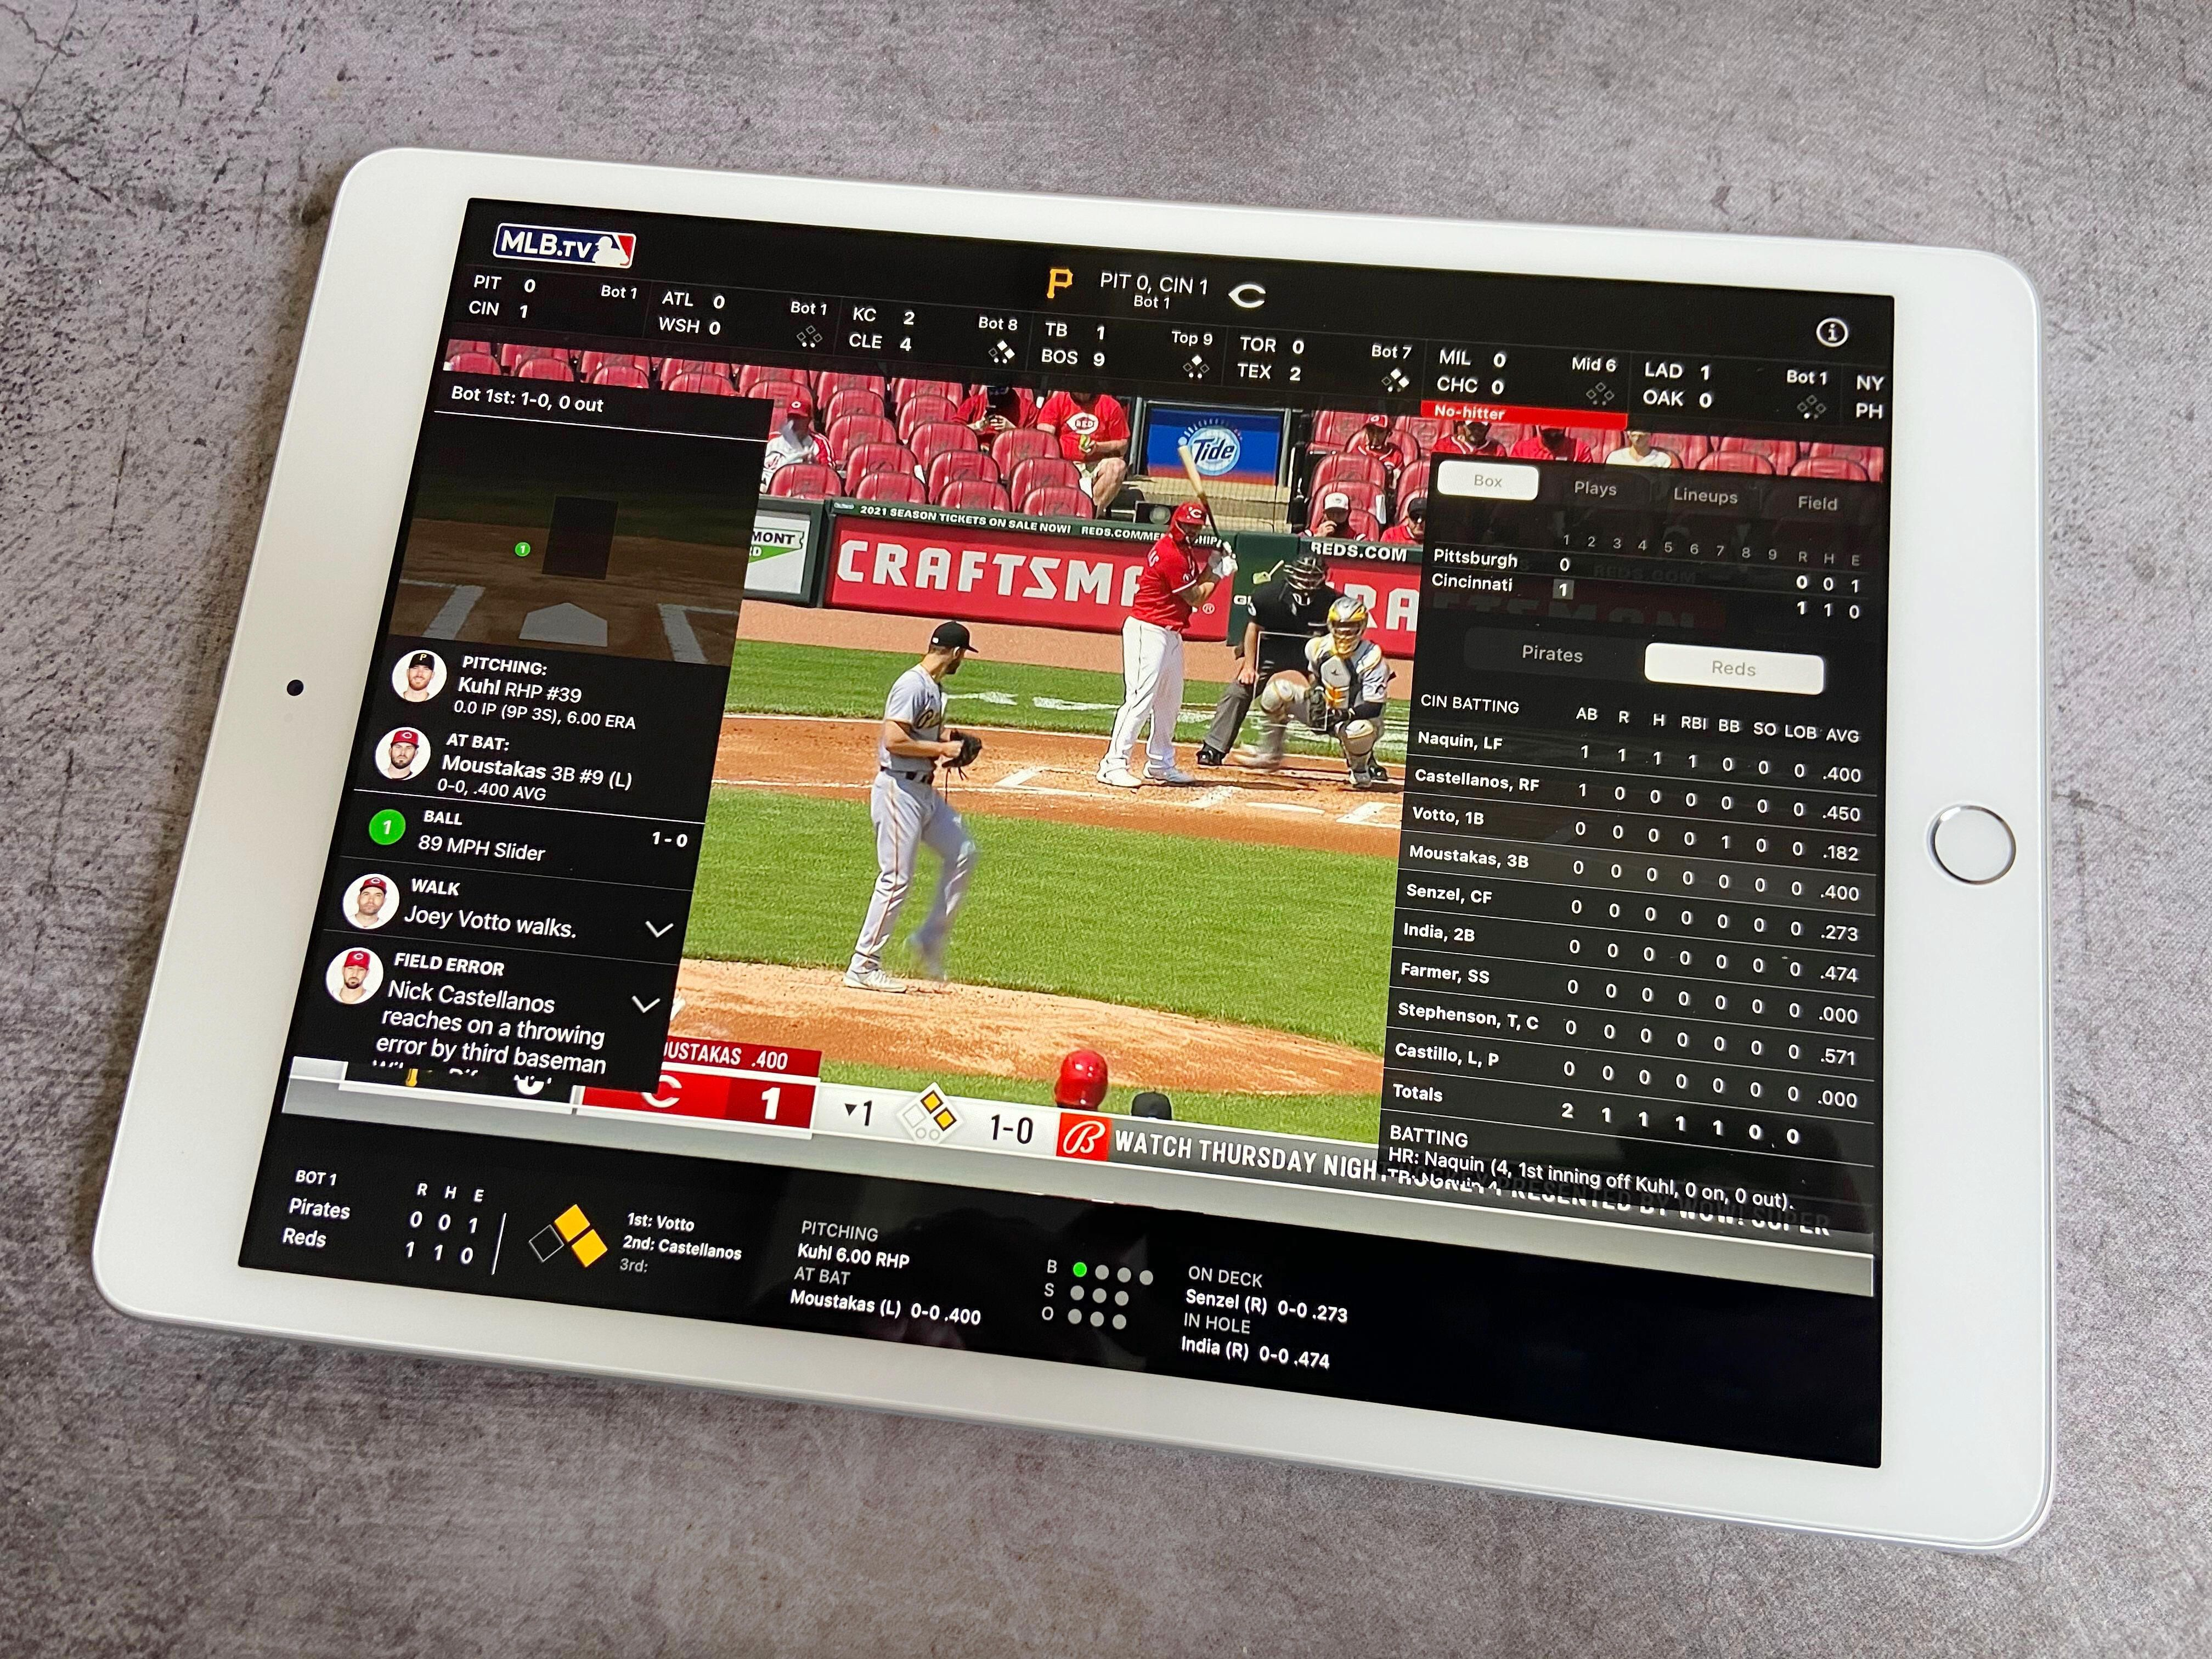 mlb-tv-streaming-app-2021-review